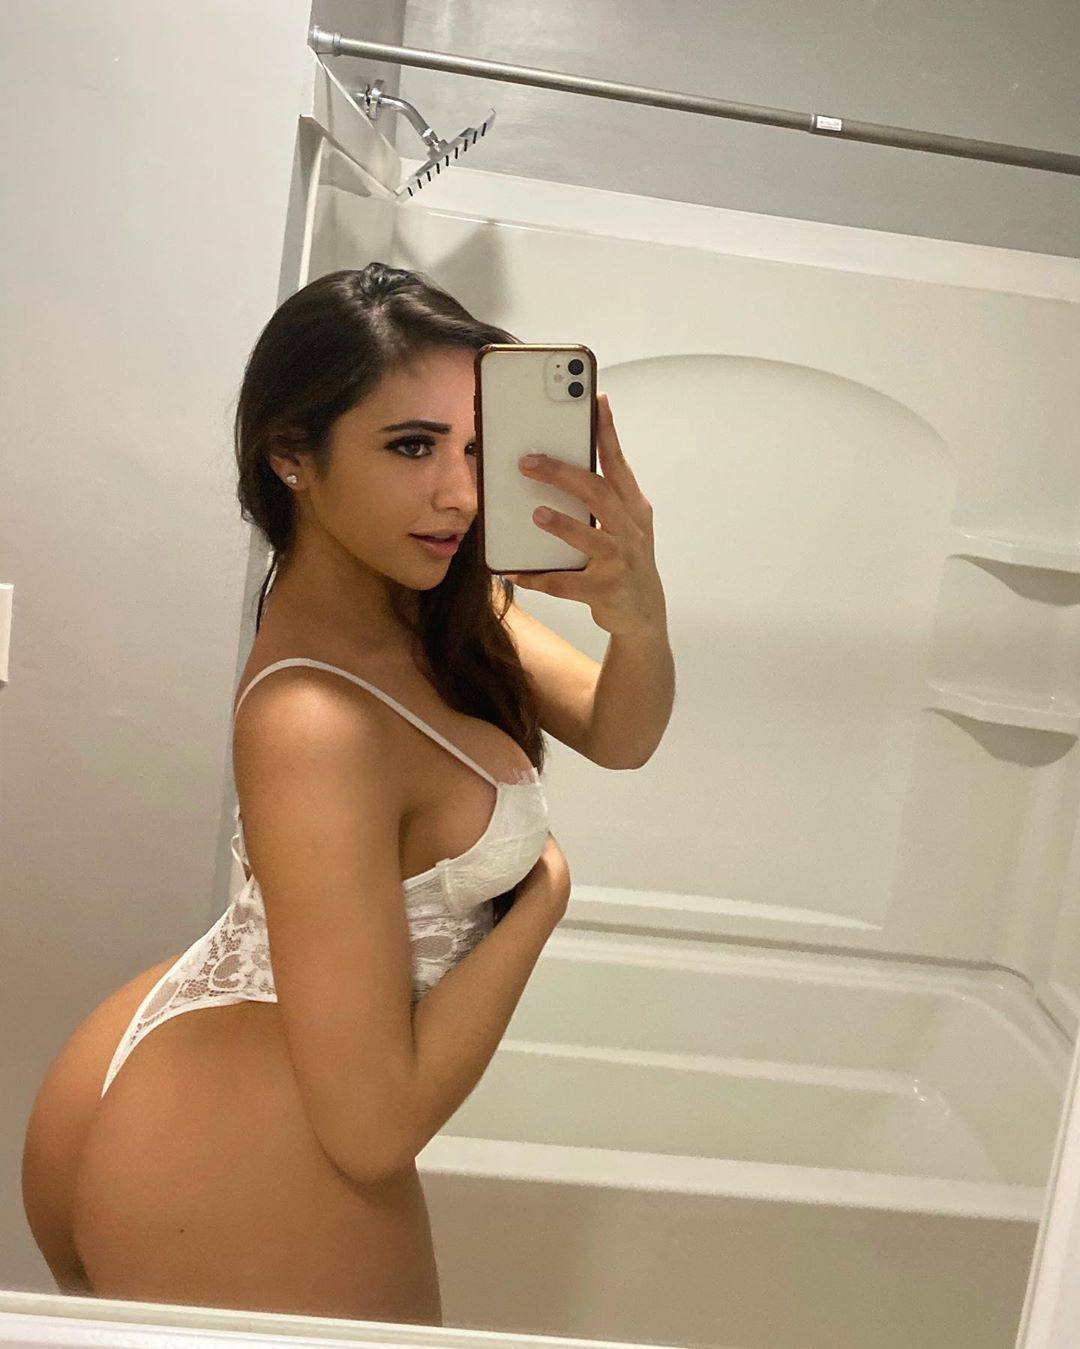 Ashley Ortiz Big Ass And Boobs In Racy White Lingerie 0003